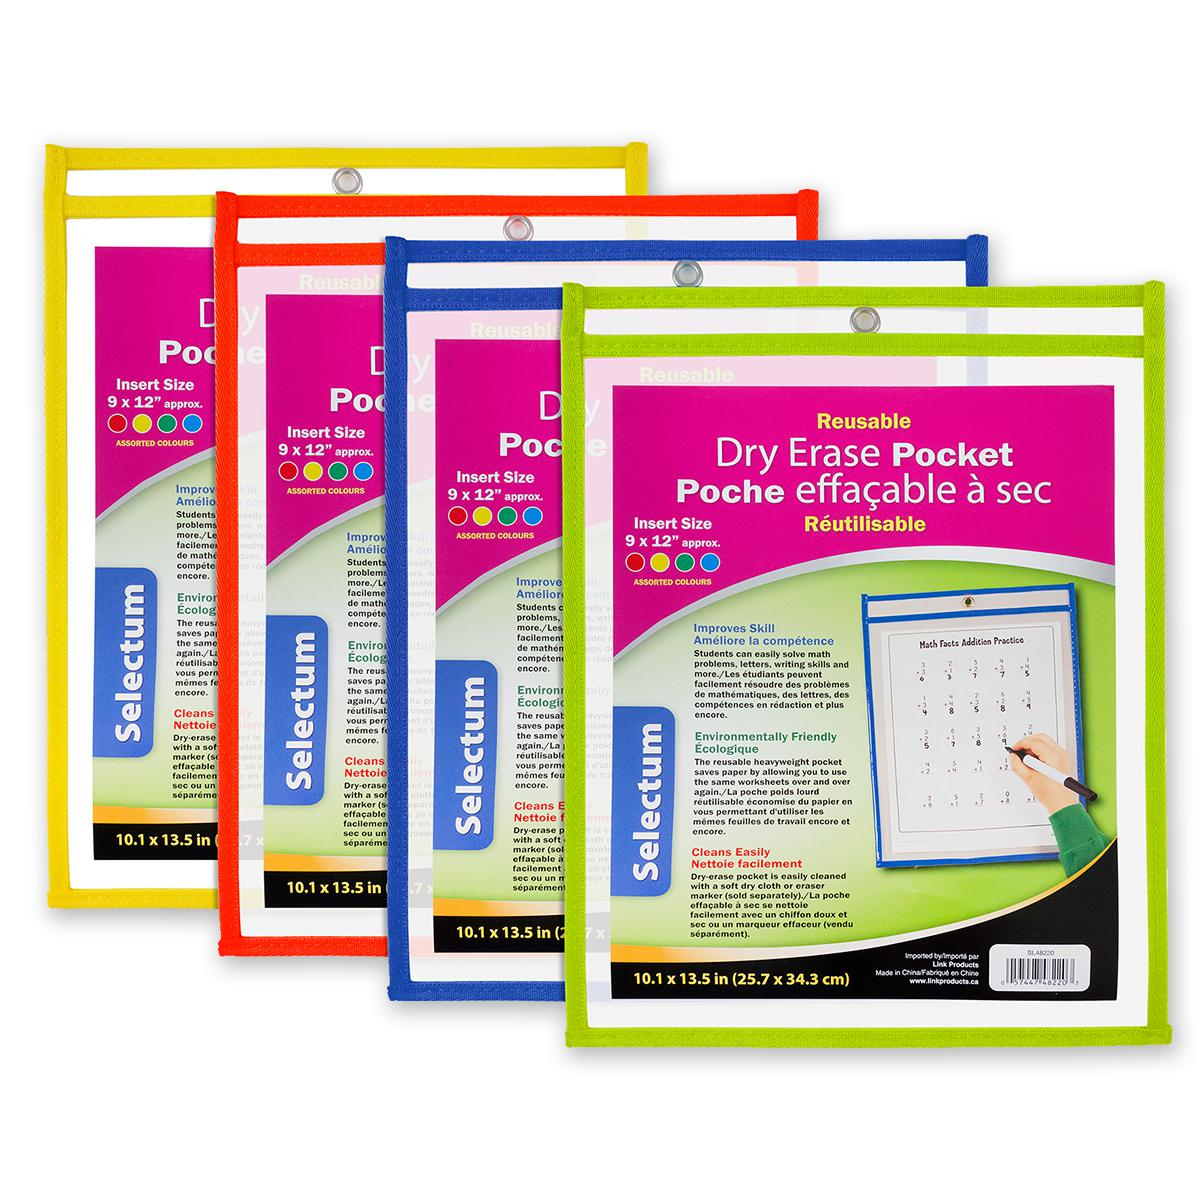 Reusable Dry Erase Pockets 12-Pack